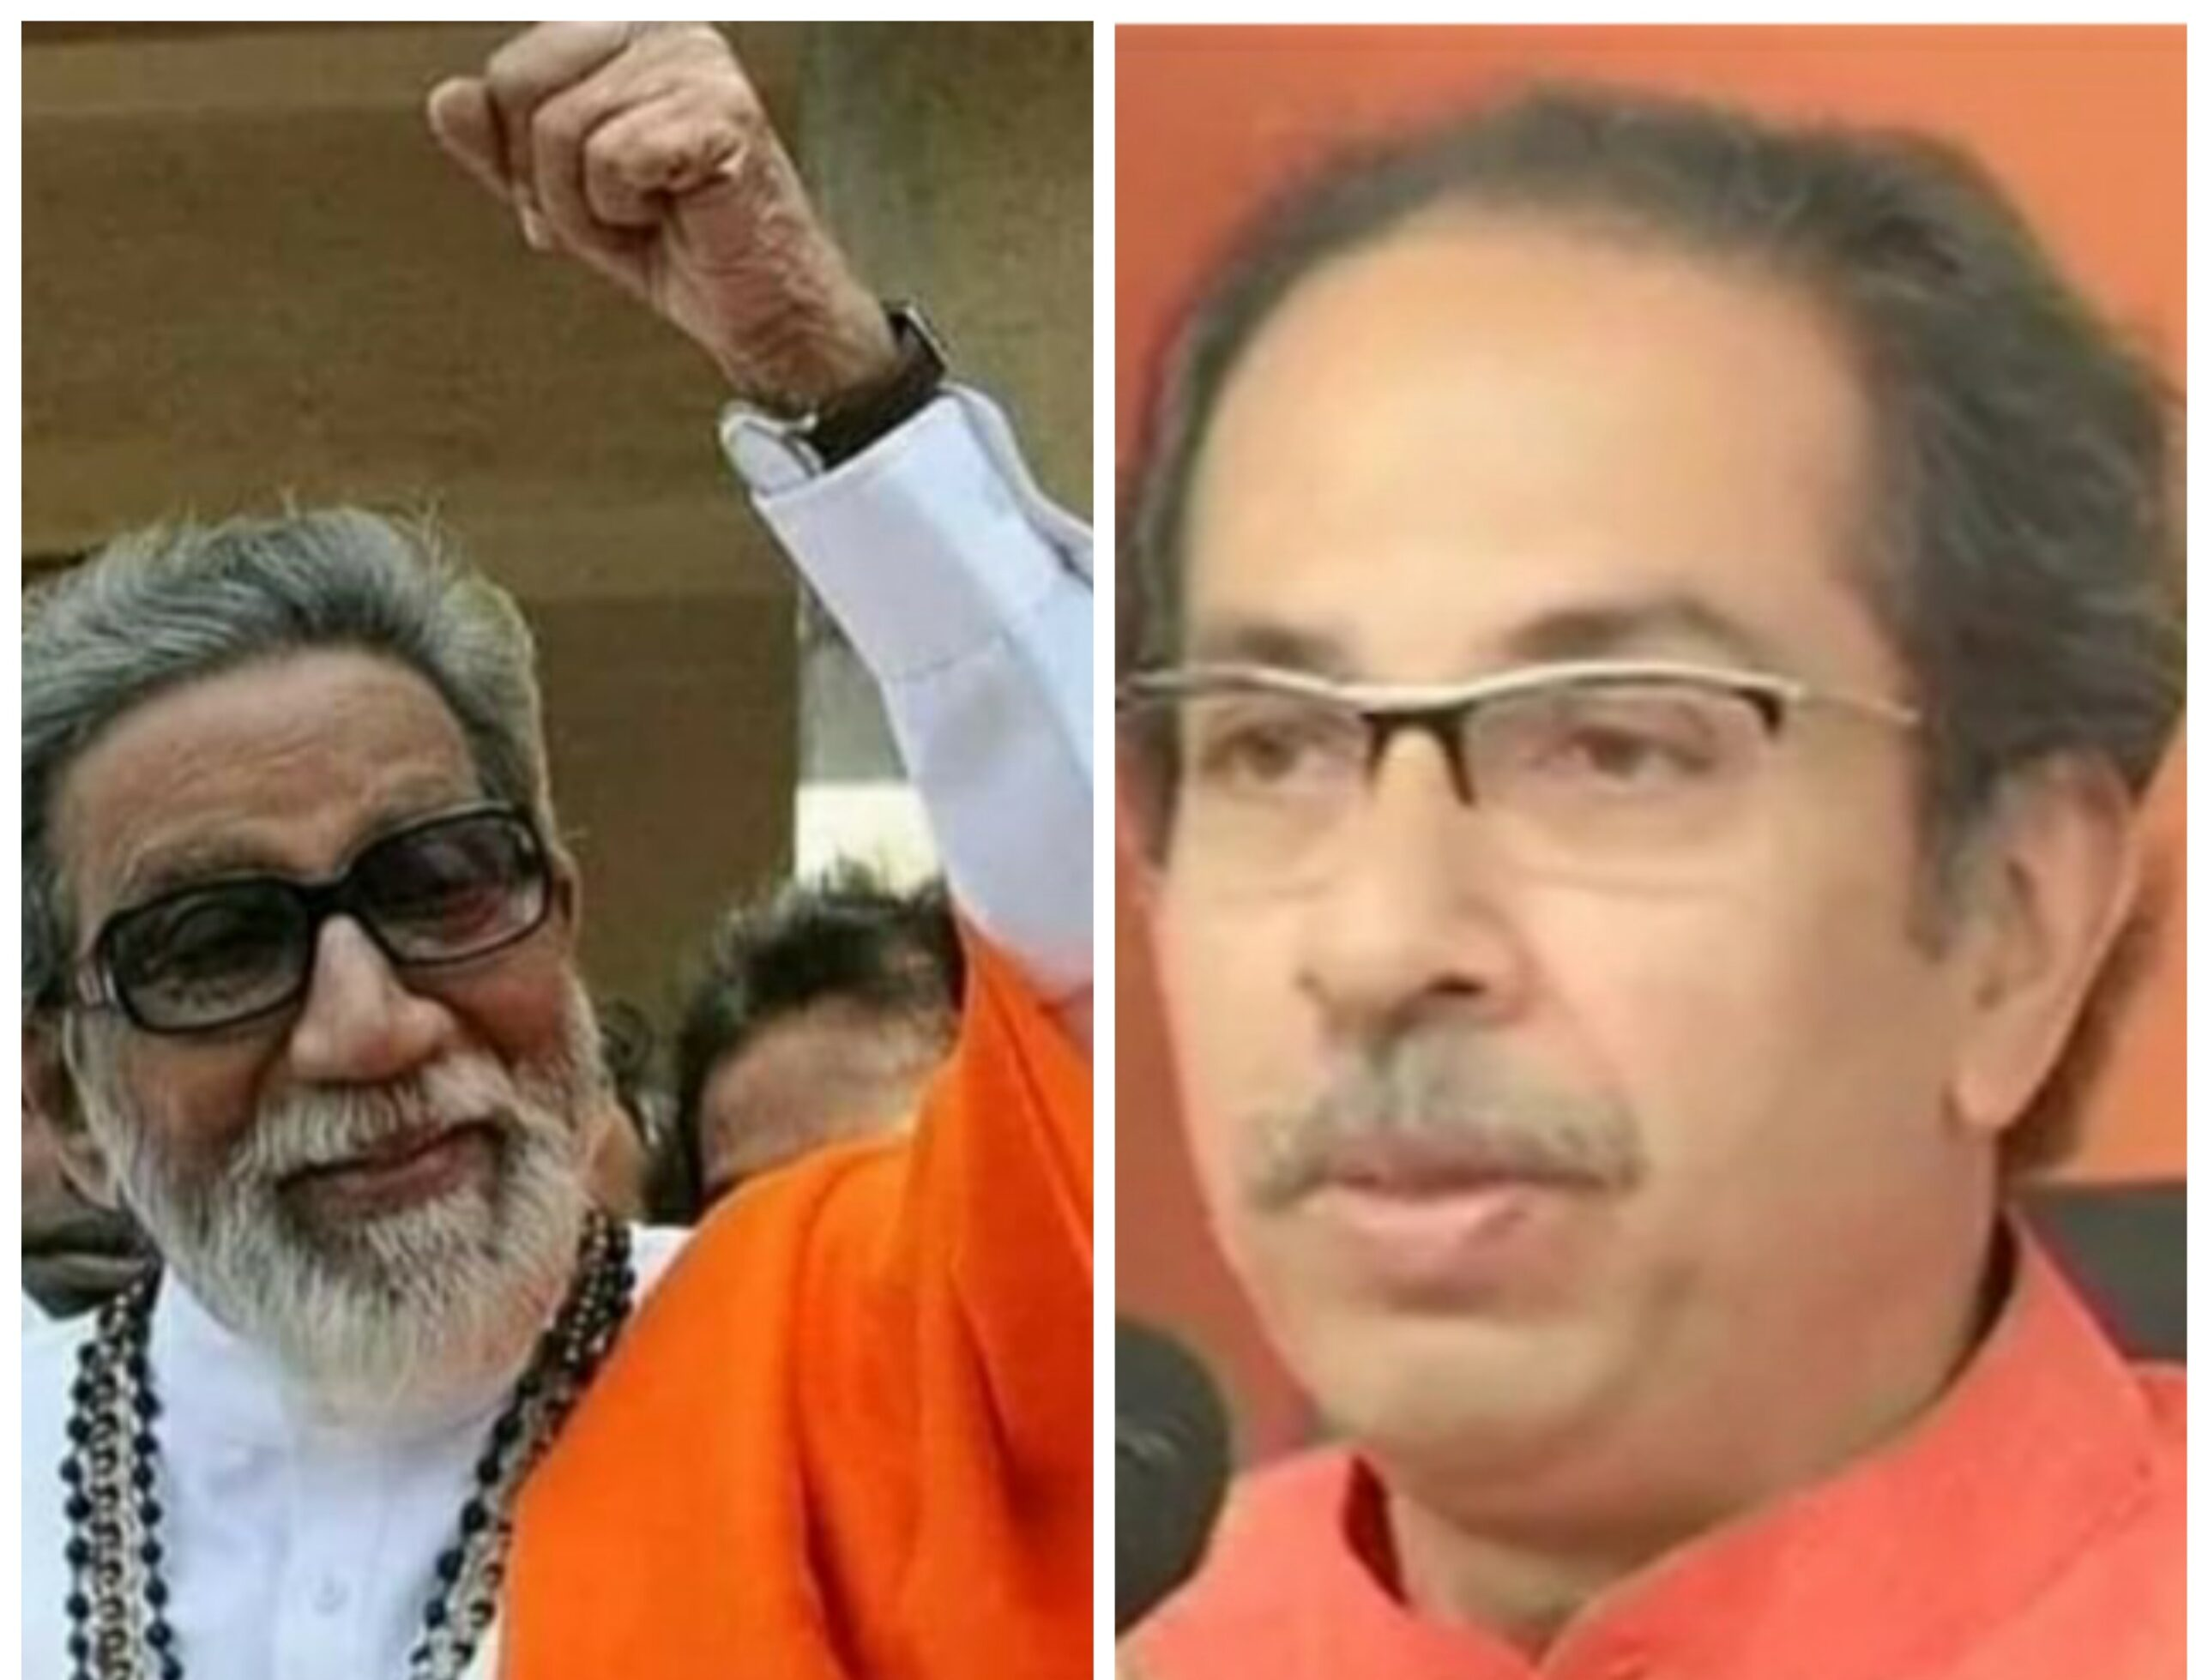 Uddhav Thackeray's Shiv Sena is completely different from Balasaheb's Shiv Sena